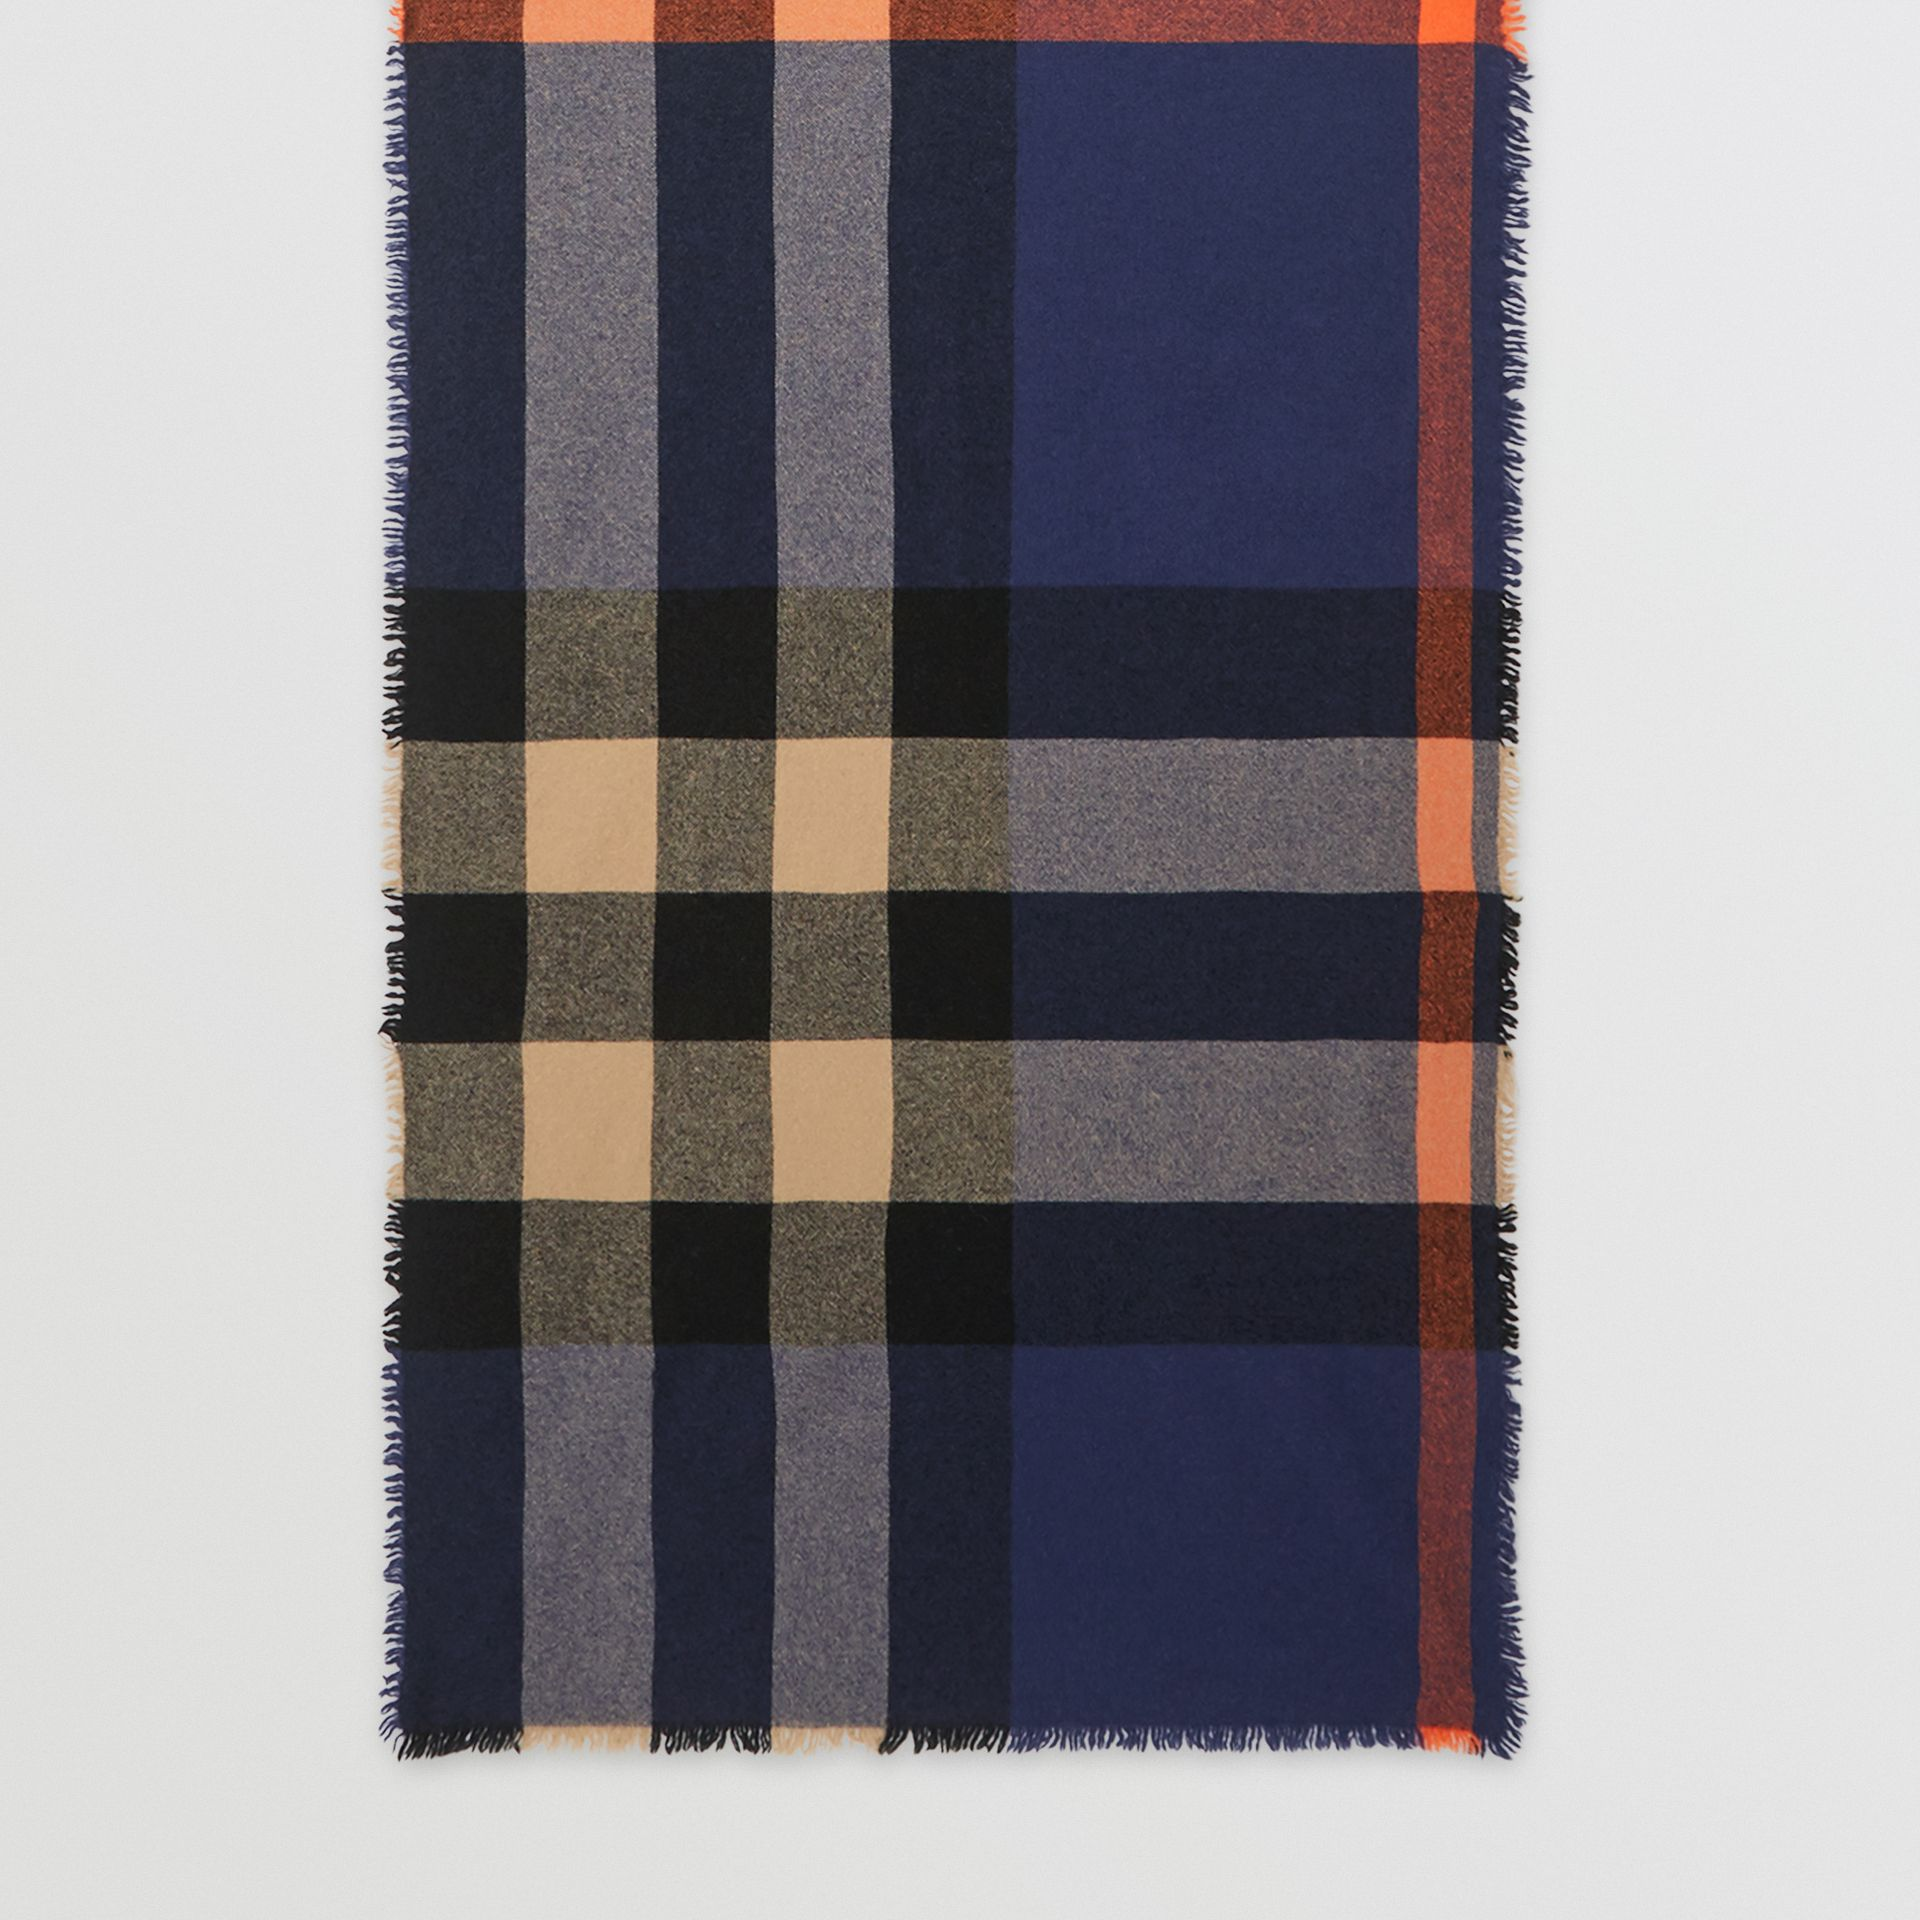 Fringed Check Wool Cashmere Scarf in Ink Blue | Burberry - gallery image 2